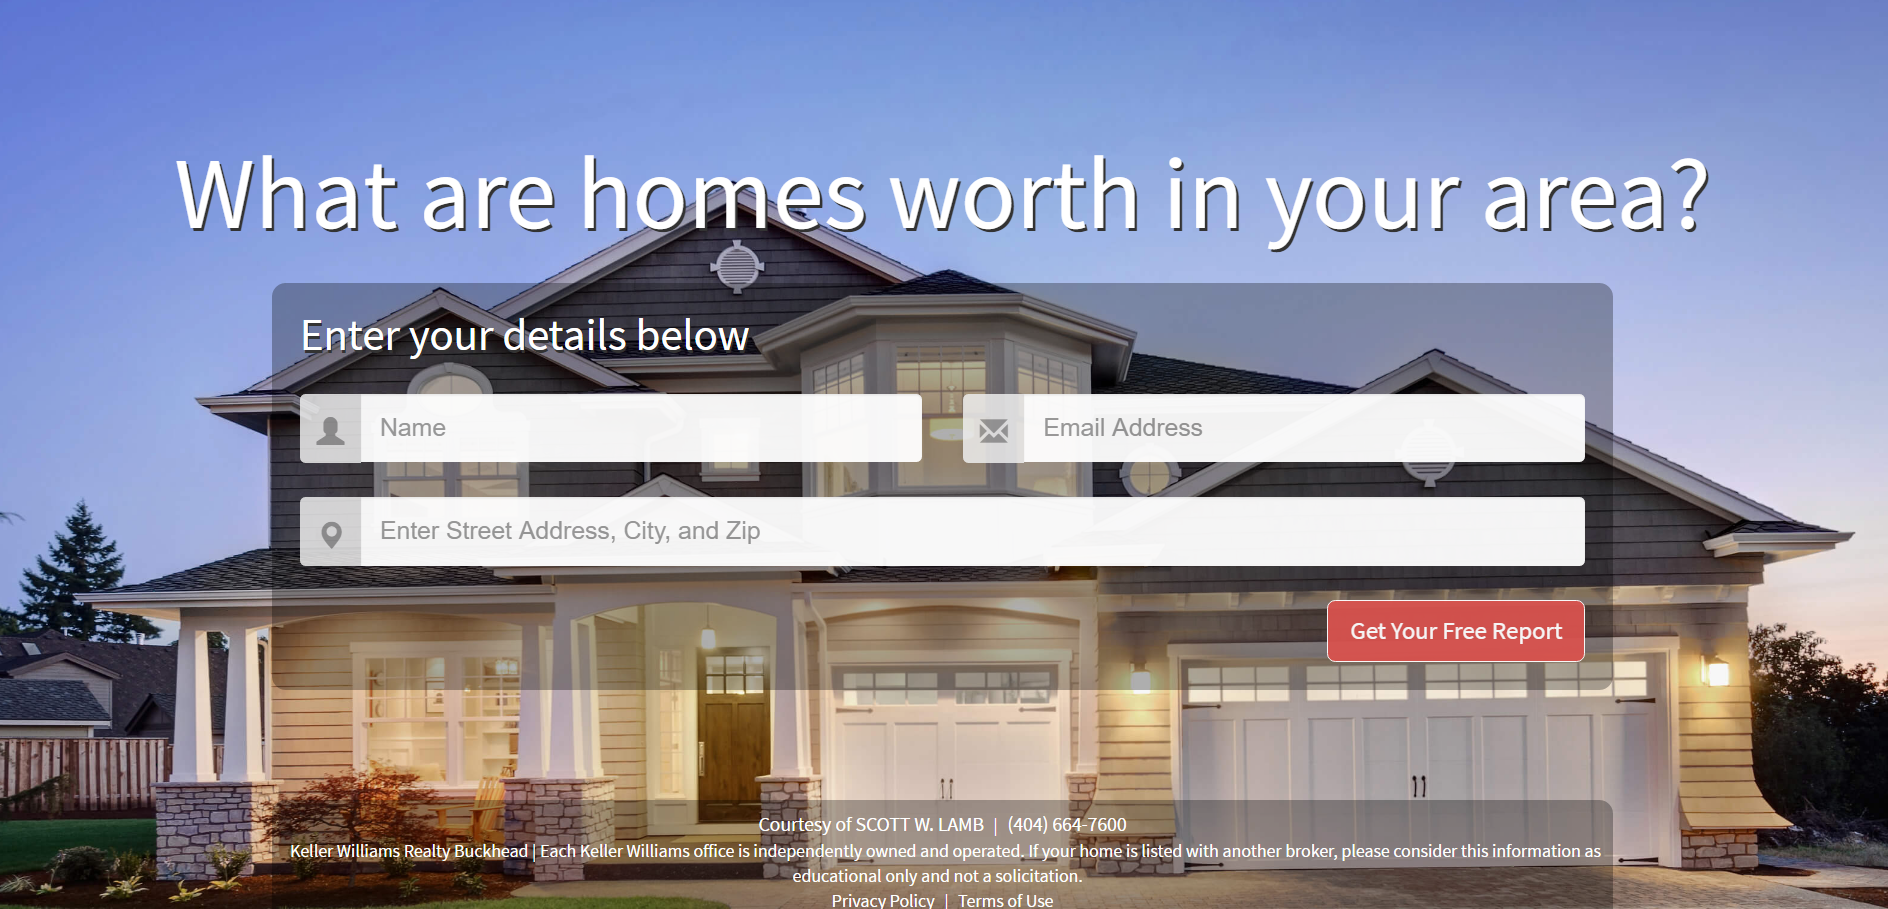 What are homes worth in your area?